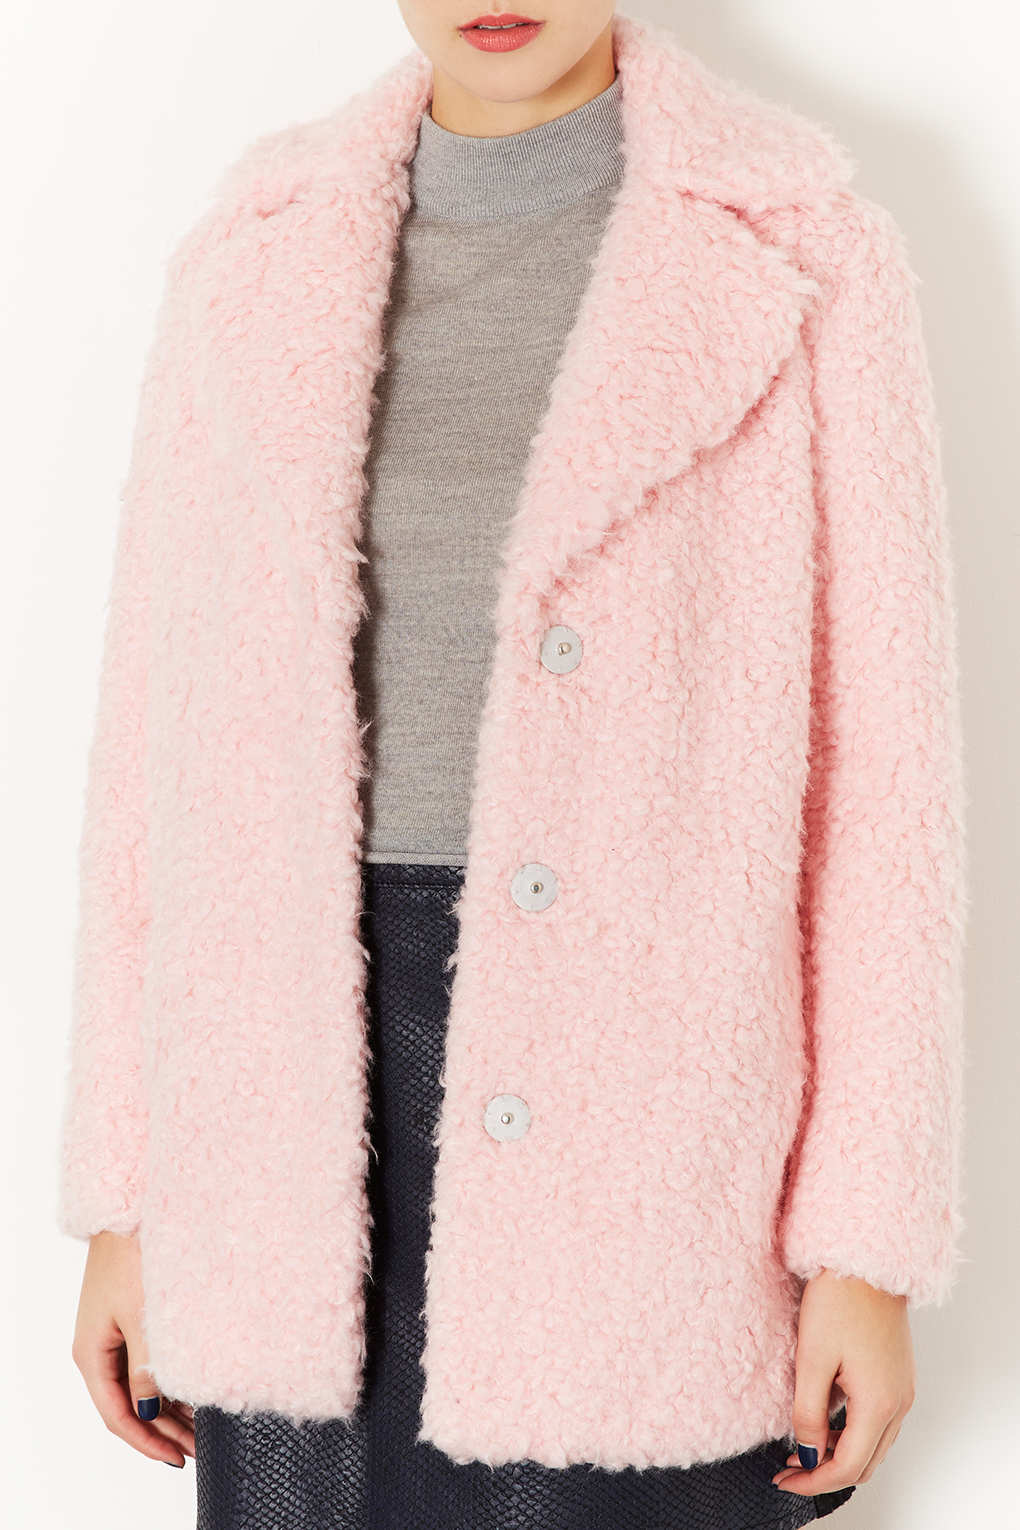 Lyst Topshop Teddy Fur Pea Coat In Pink